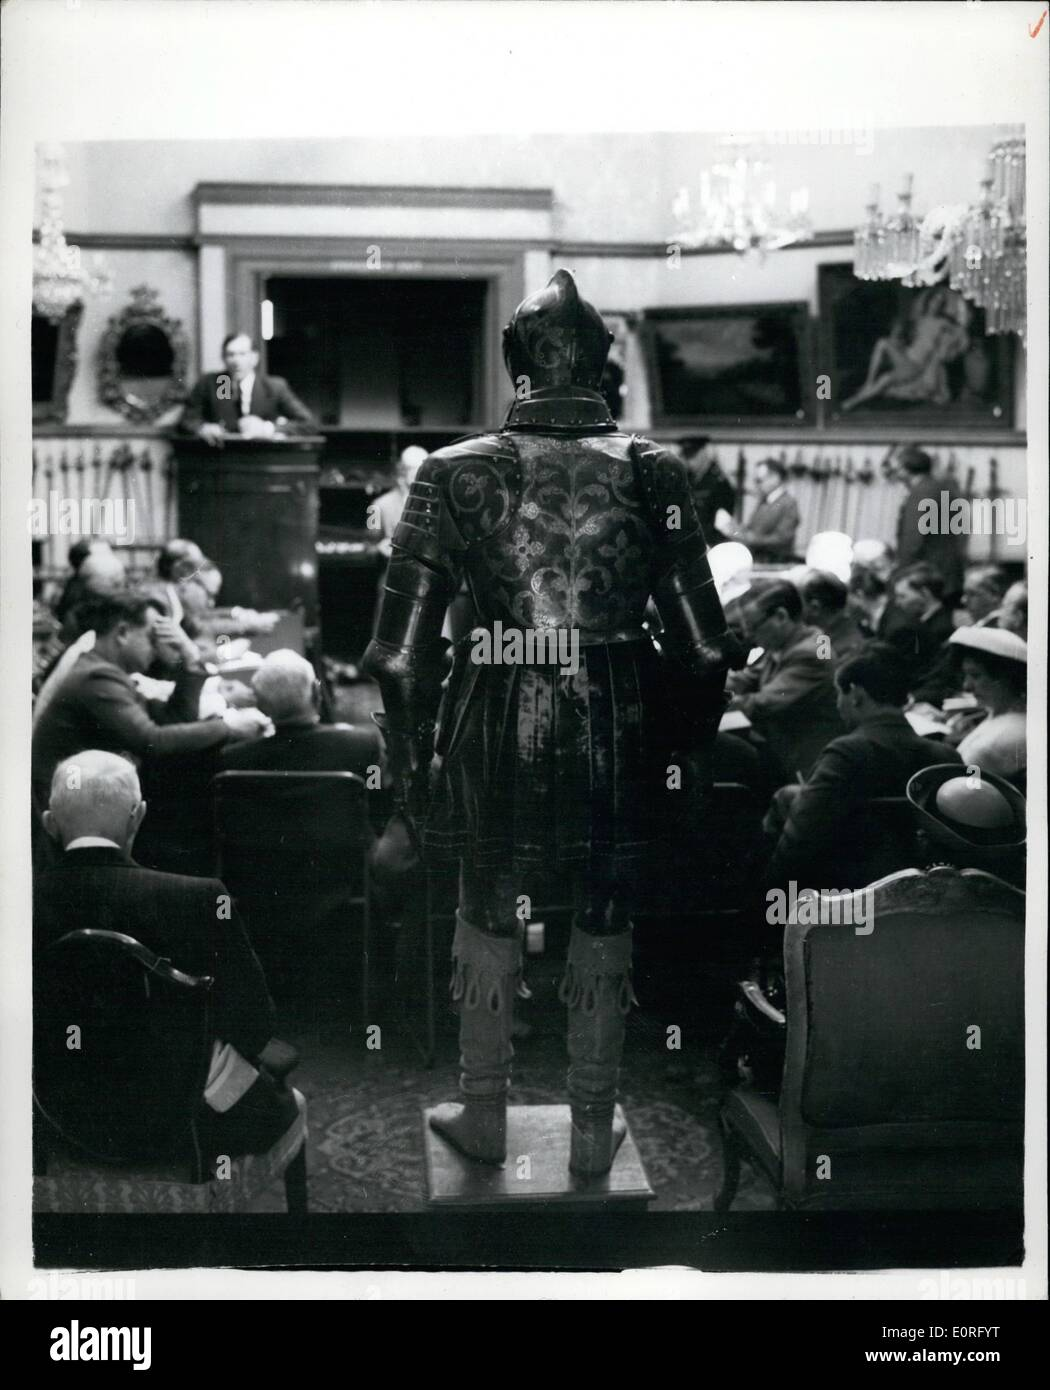 Jun. 06, 1959 - Sale of Arms and Armour at Christies suit sold for 370: A sale of the collection of Arms and Armour, formed by Folke Ellioth of Goteborg, Sweden - properties of James Christie Esq - and of the late R.W. Lloyd Esq., etc. was carried out at Christies today. One of the main items sold was a suit of Armour - one of twelve suits made for Elector Christian I of Saxony, and which was to have been presented to him on Christmas Day 1591.. The Electro died four months before - so the gift was never made.. - Stock Image